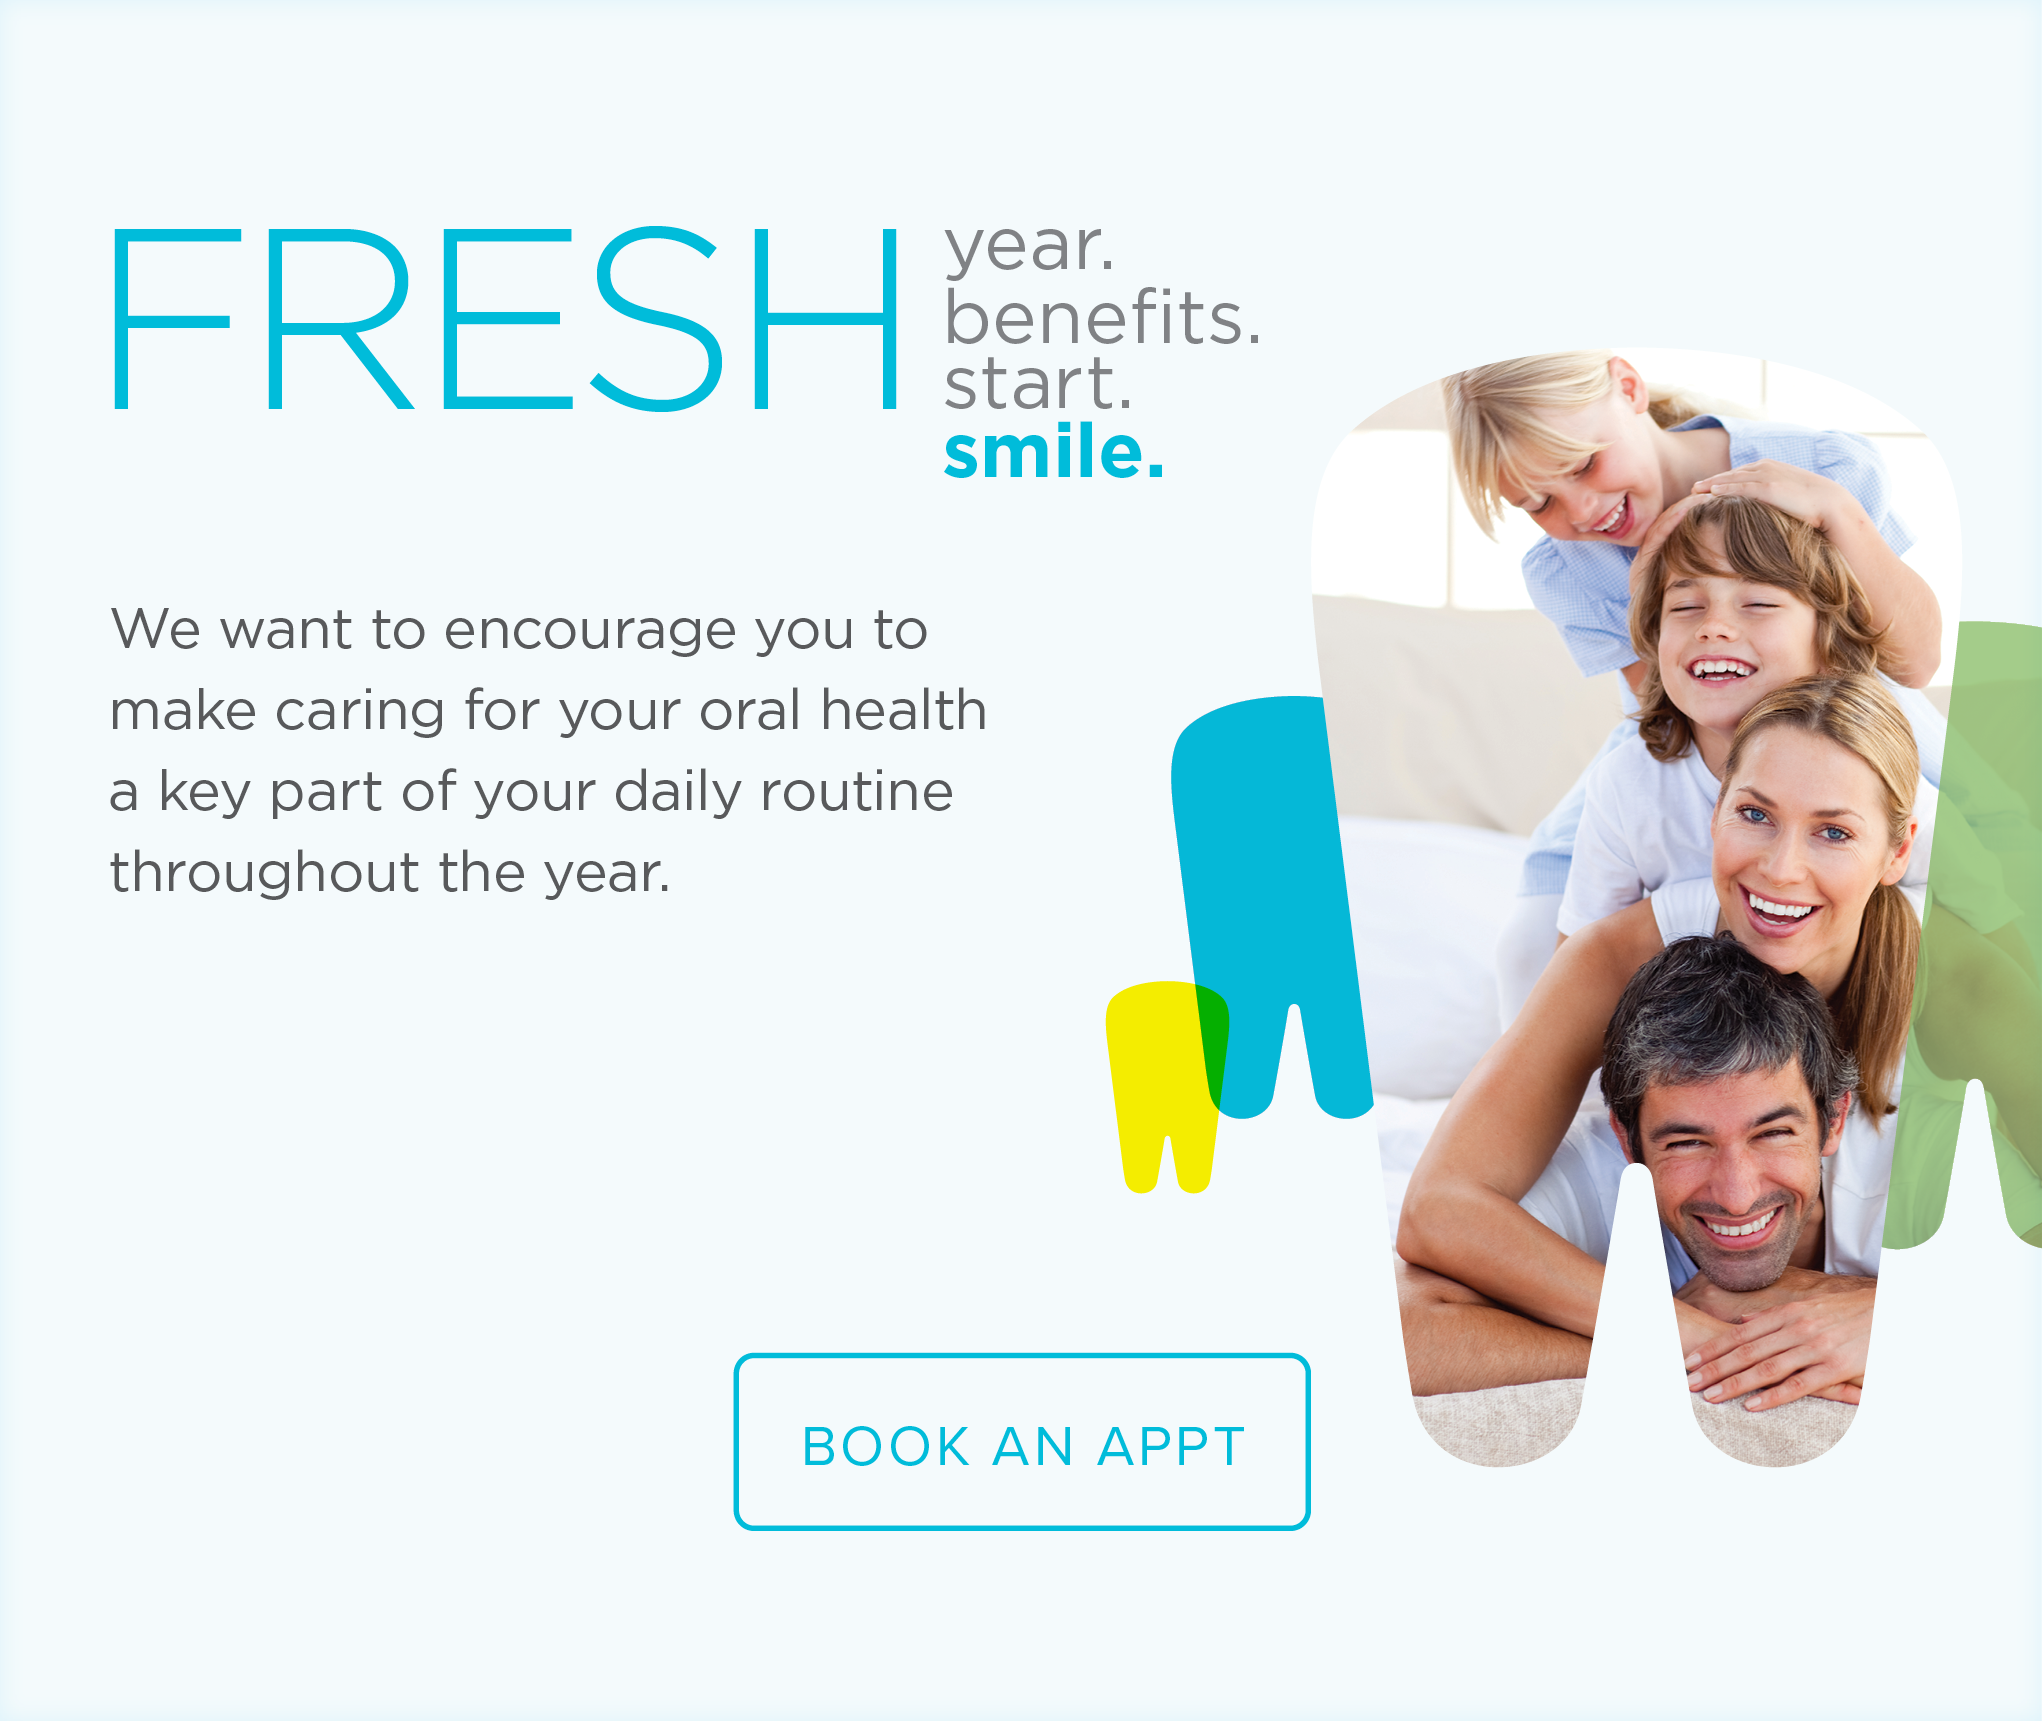 Lake Forest Dental Group and Orthodontics - Make the Most of Your Benefits